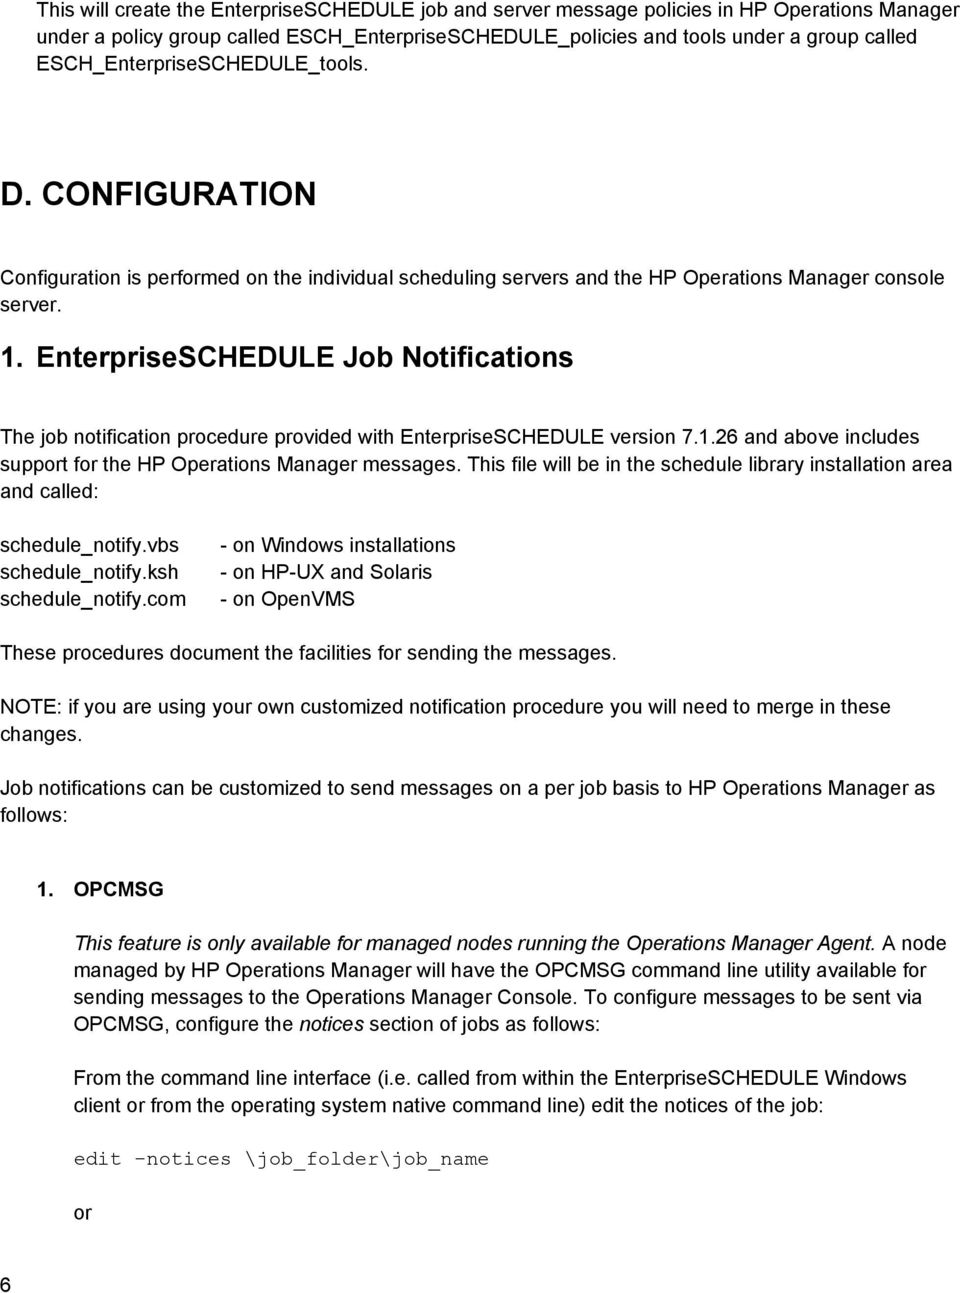 EnterpriseSCHEDULE Job Notifications The job notification procedure provided with EnterpriseSCHEDULE version 7.1.26 and above includes support for the HP Operations Manager messages.